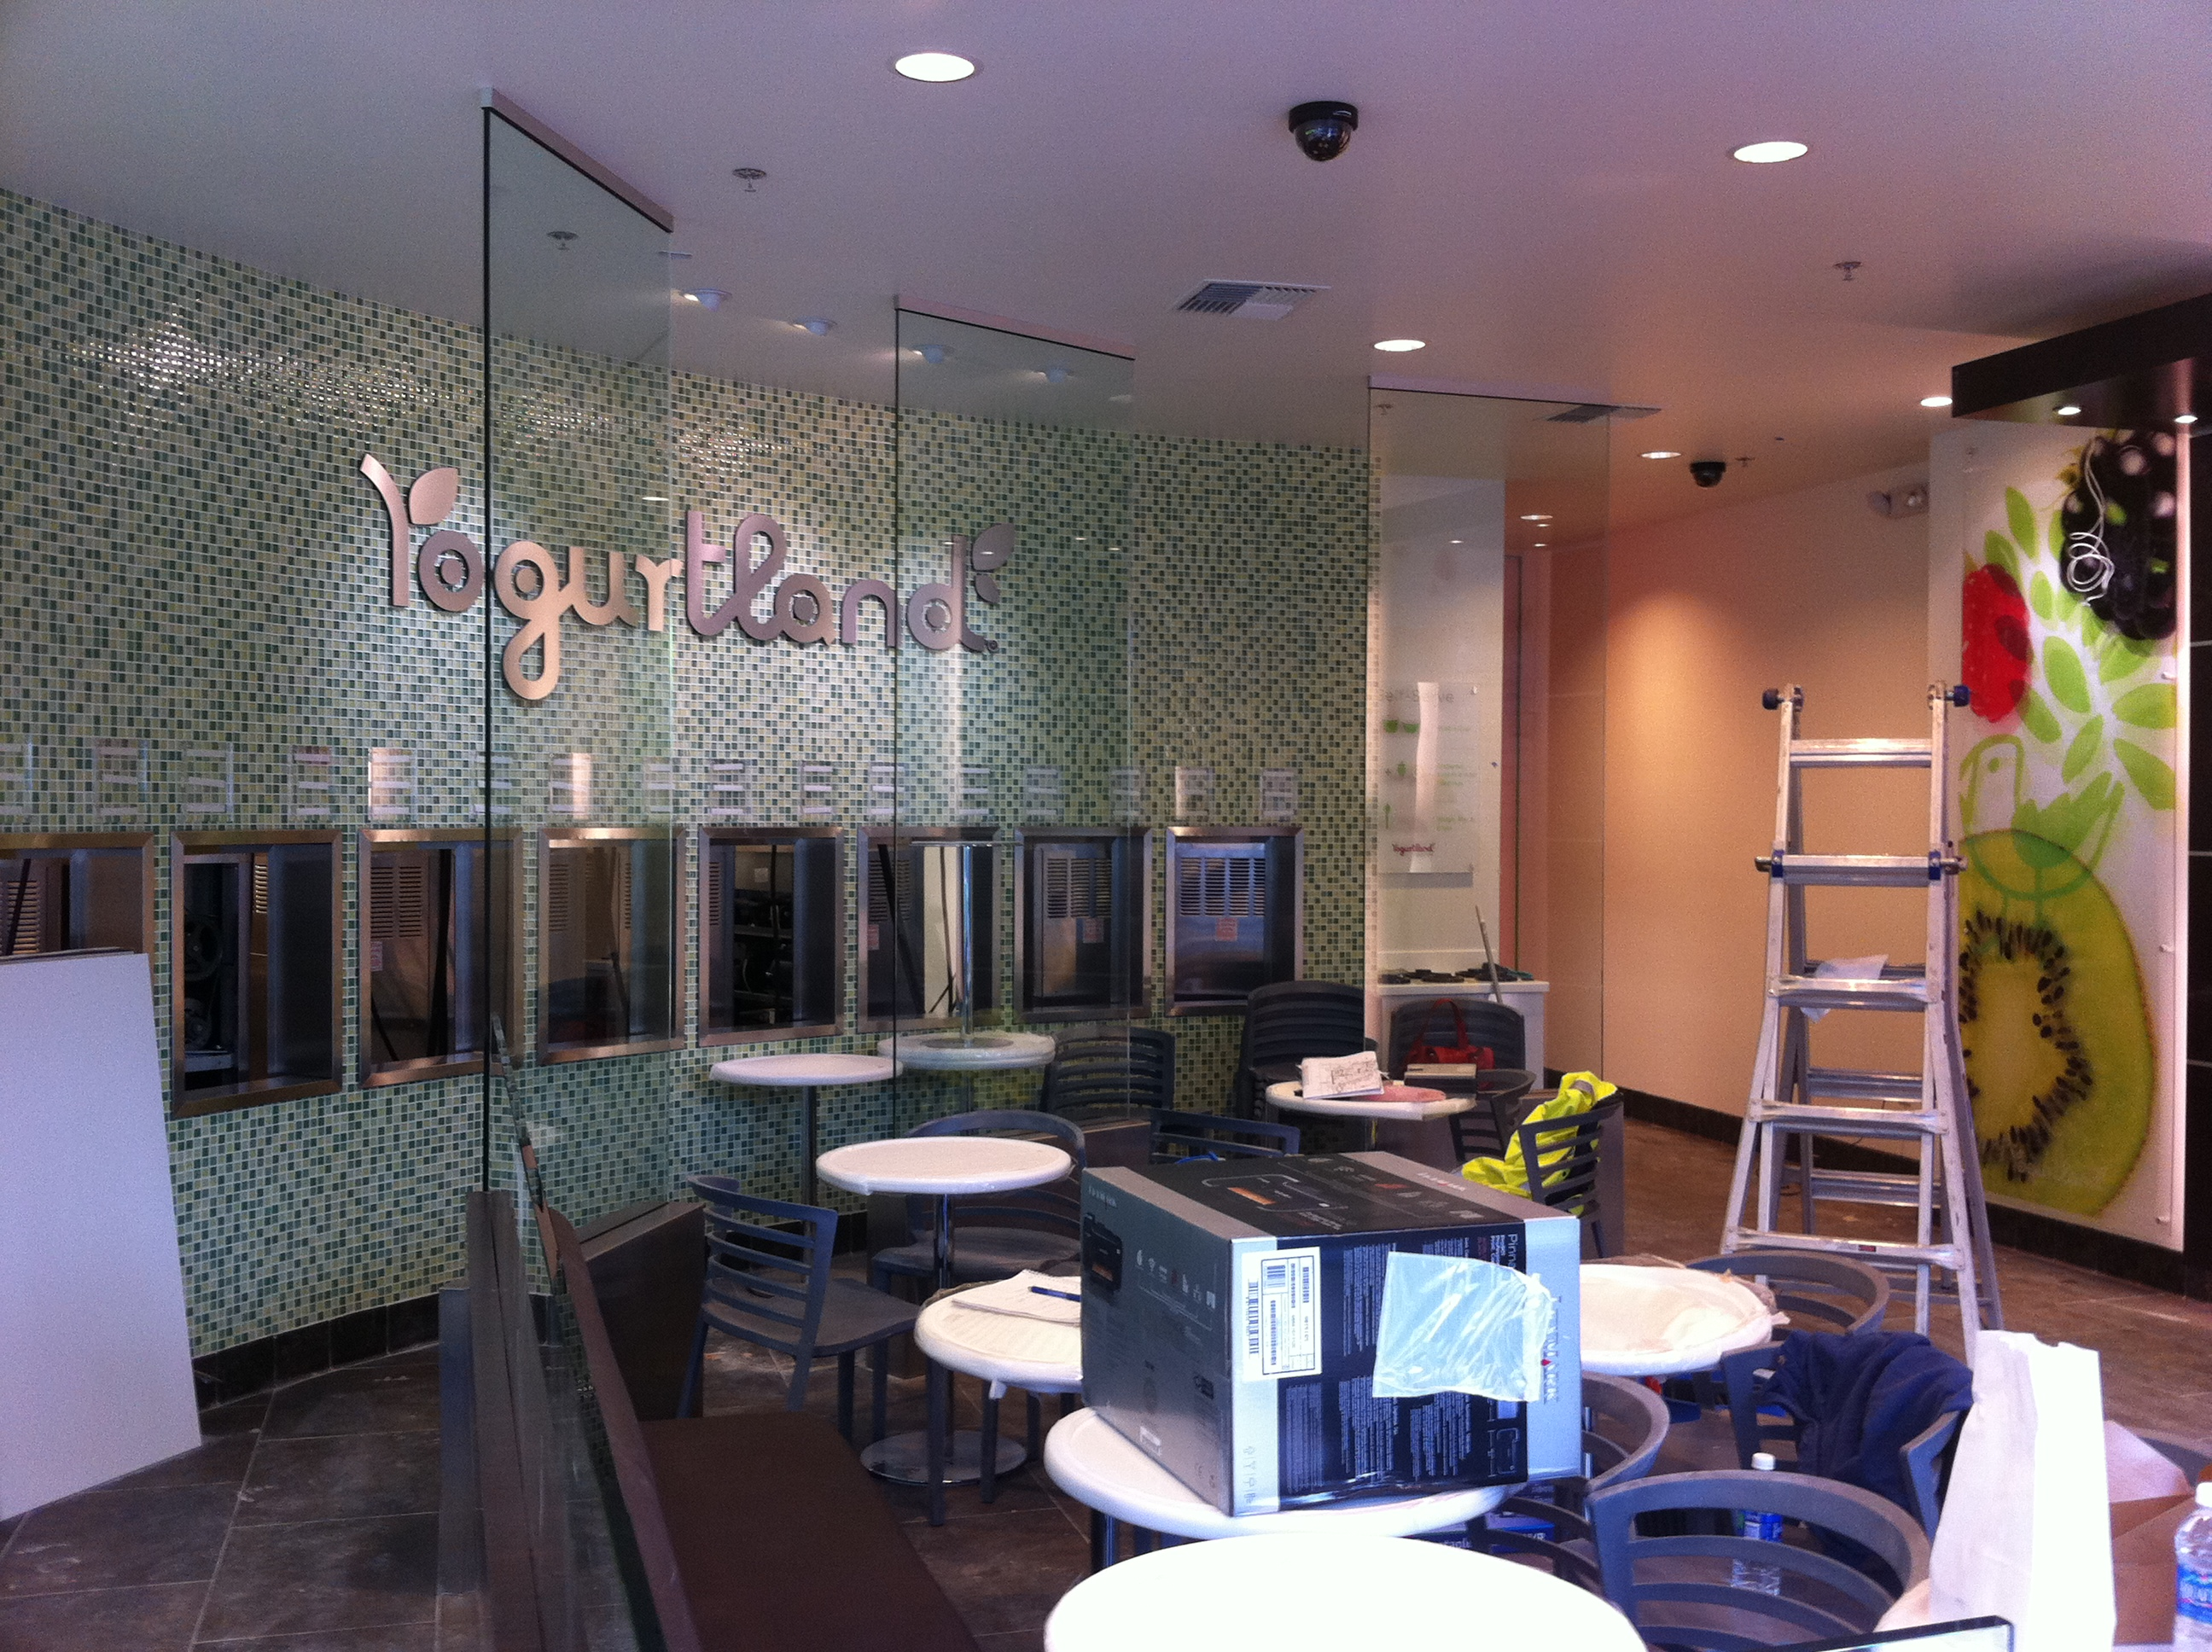 Opening on Broadway: Froyo by the ounce at Yogurtland ...